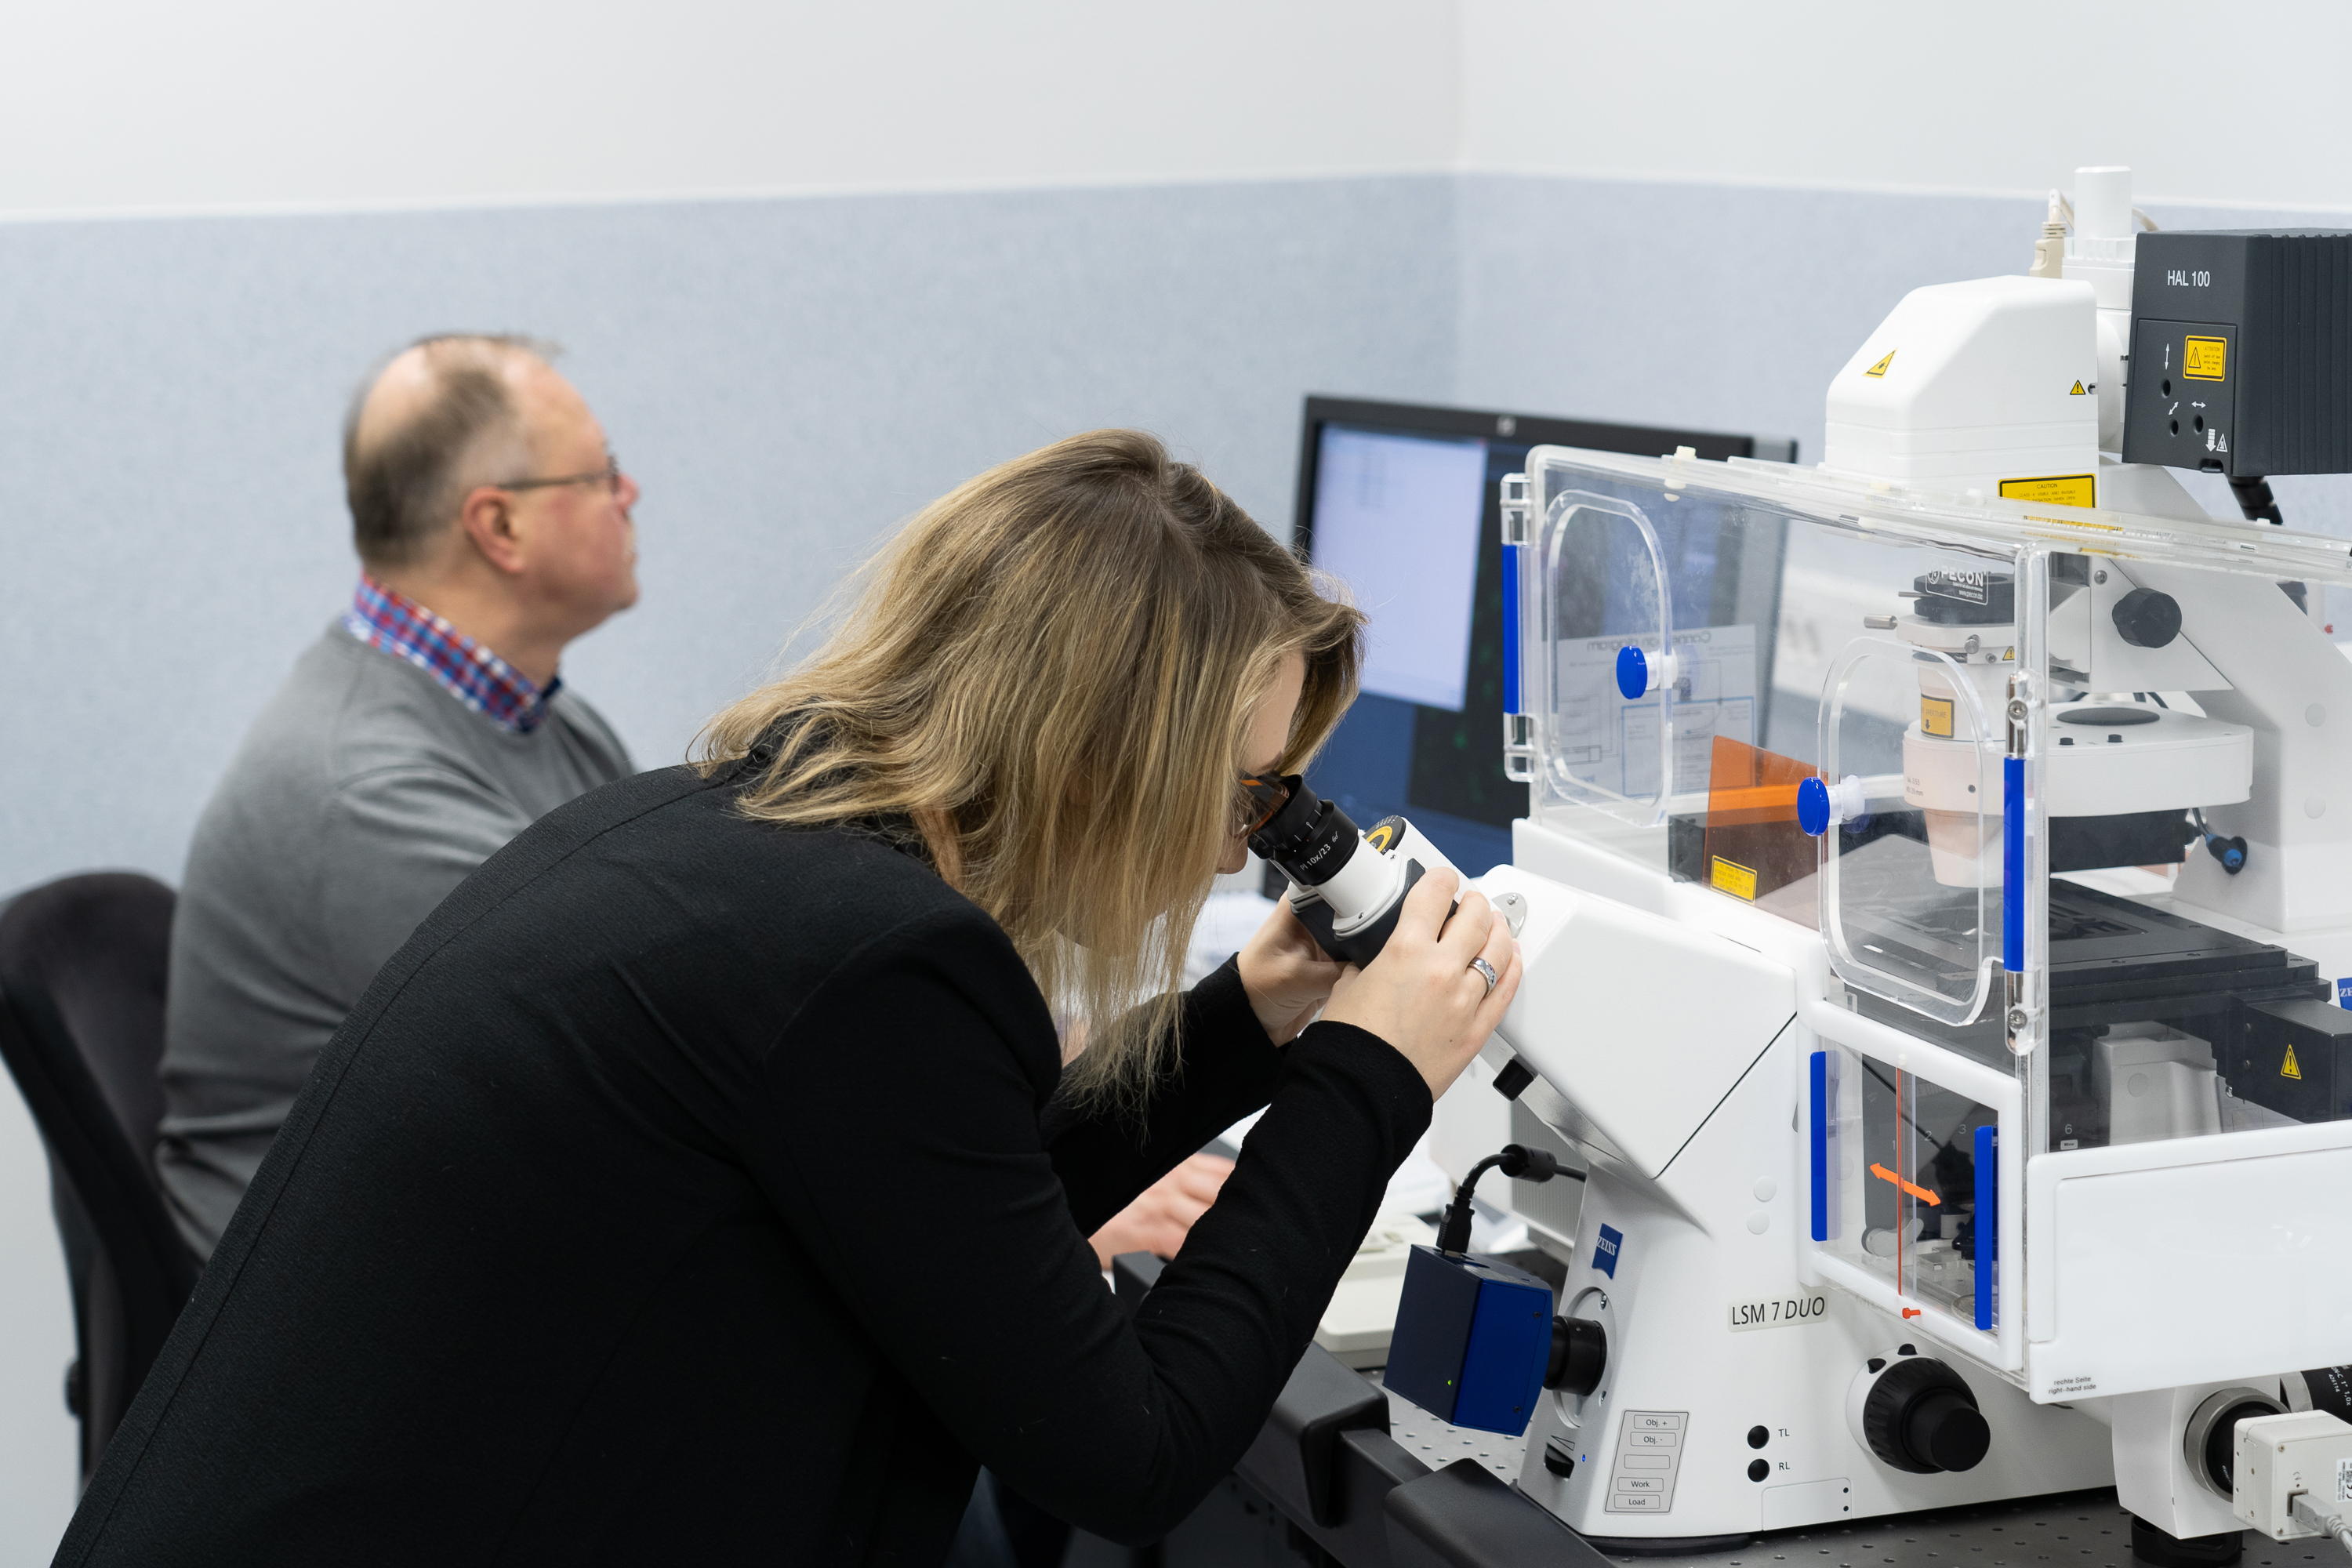 The researchers analyze their images with a ZEISS microscope.